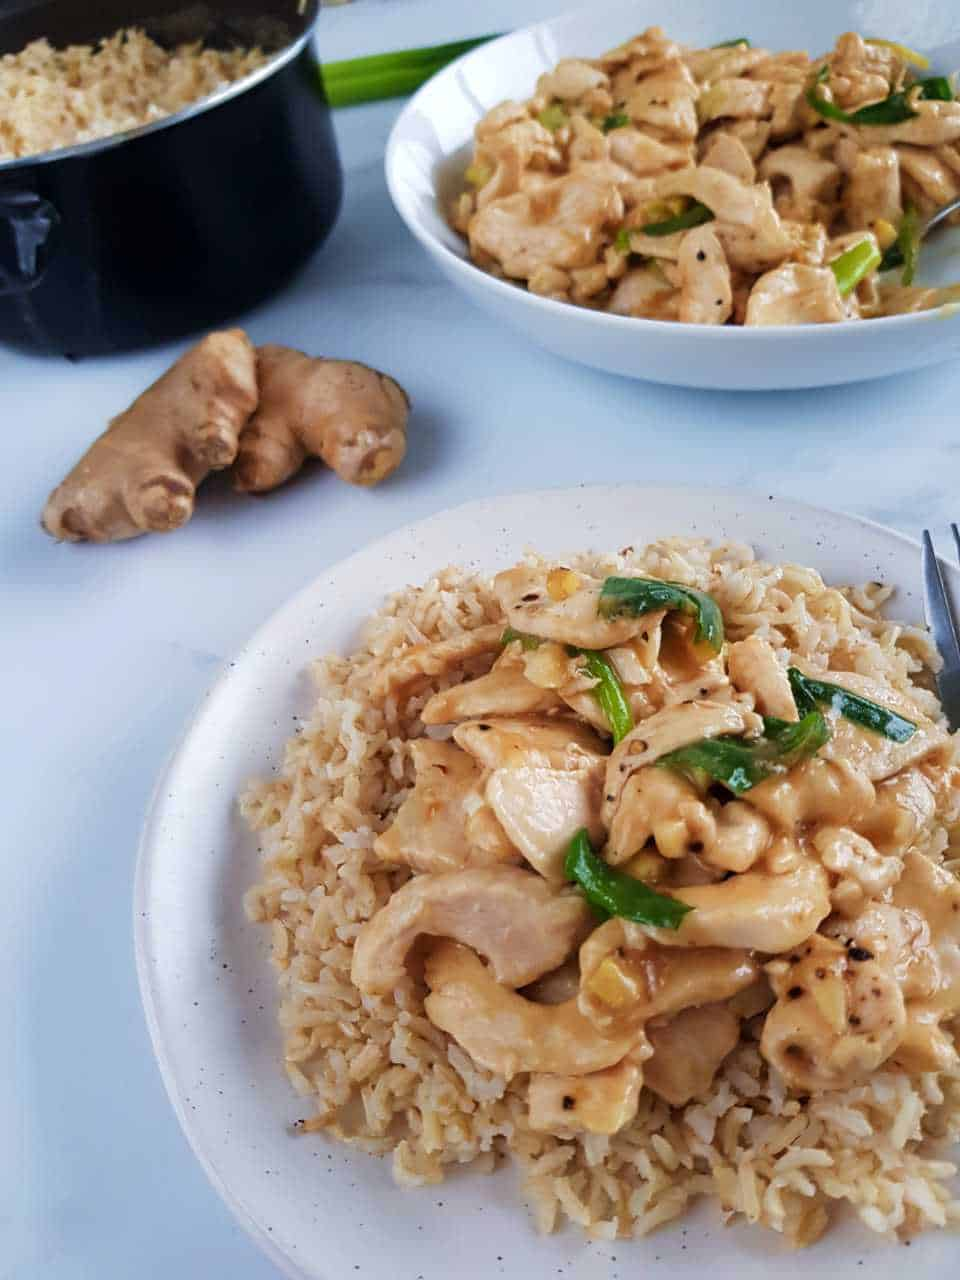 Ginger and spring onion chicken in a bowl over rice.